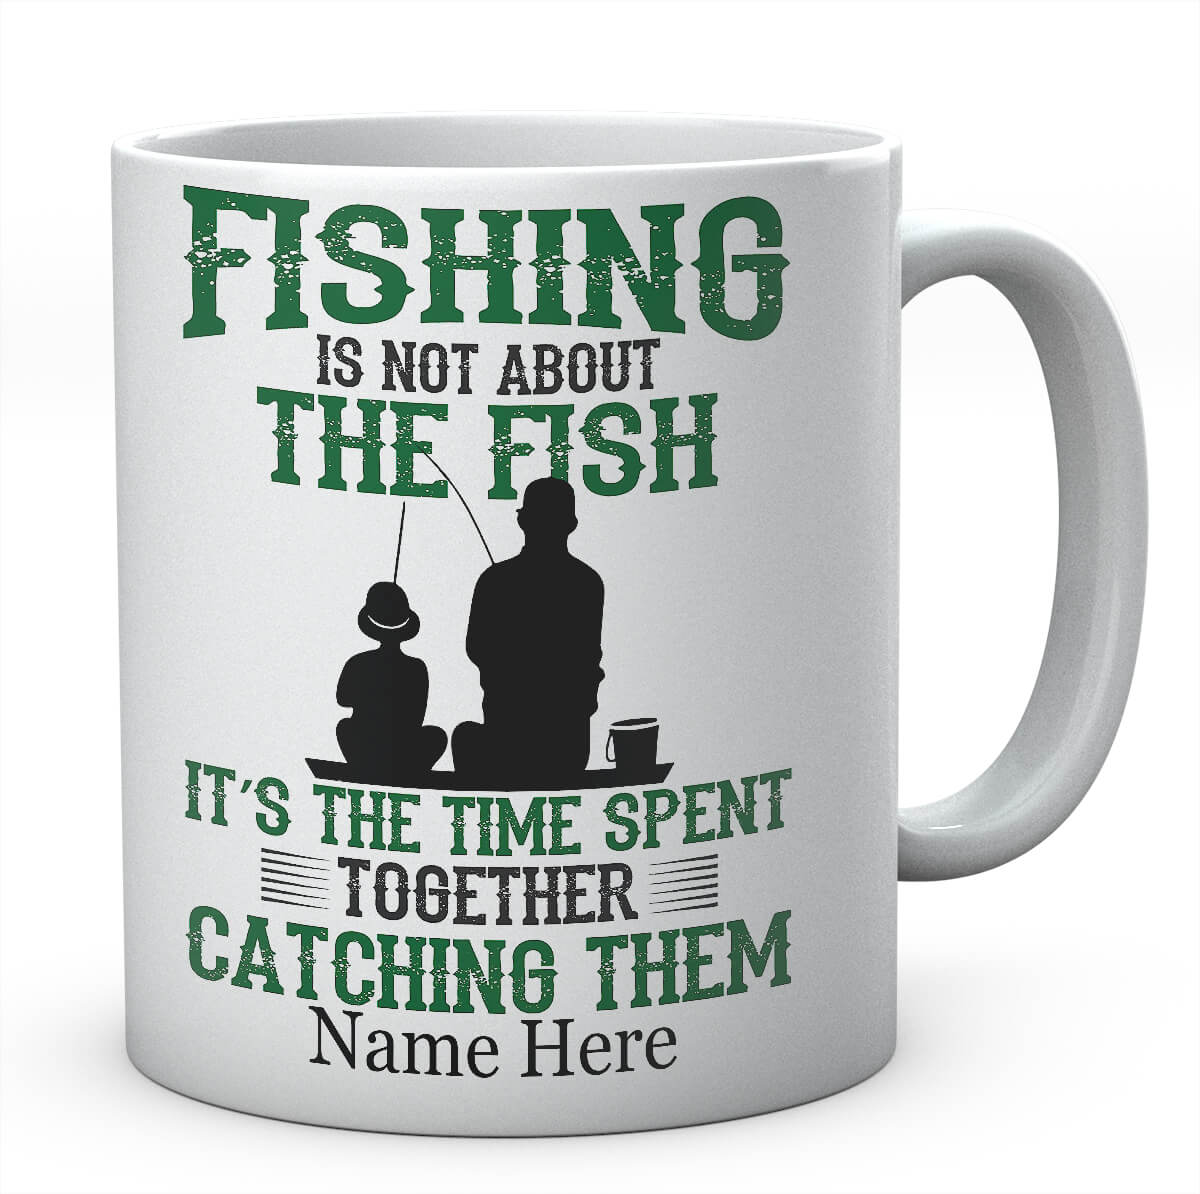 Fishing Is Not About The Fish, It's The Time Together Catching Them/Personalised Fishing Mug